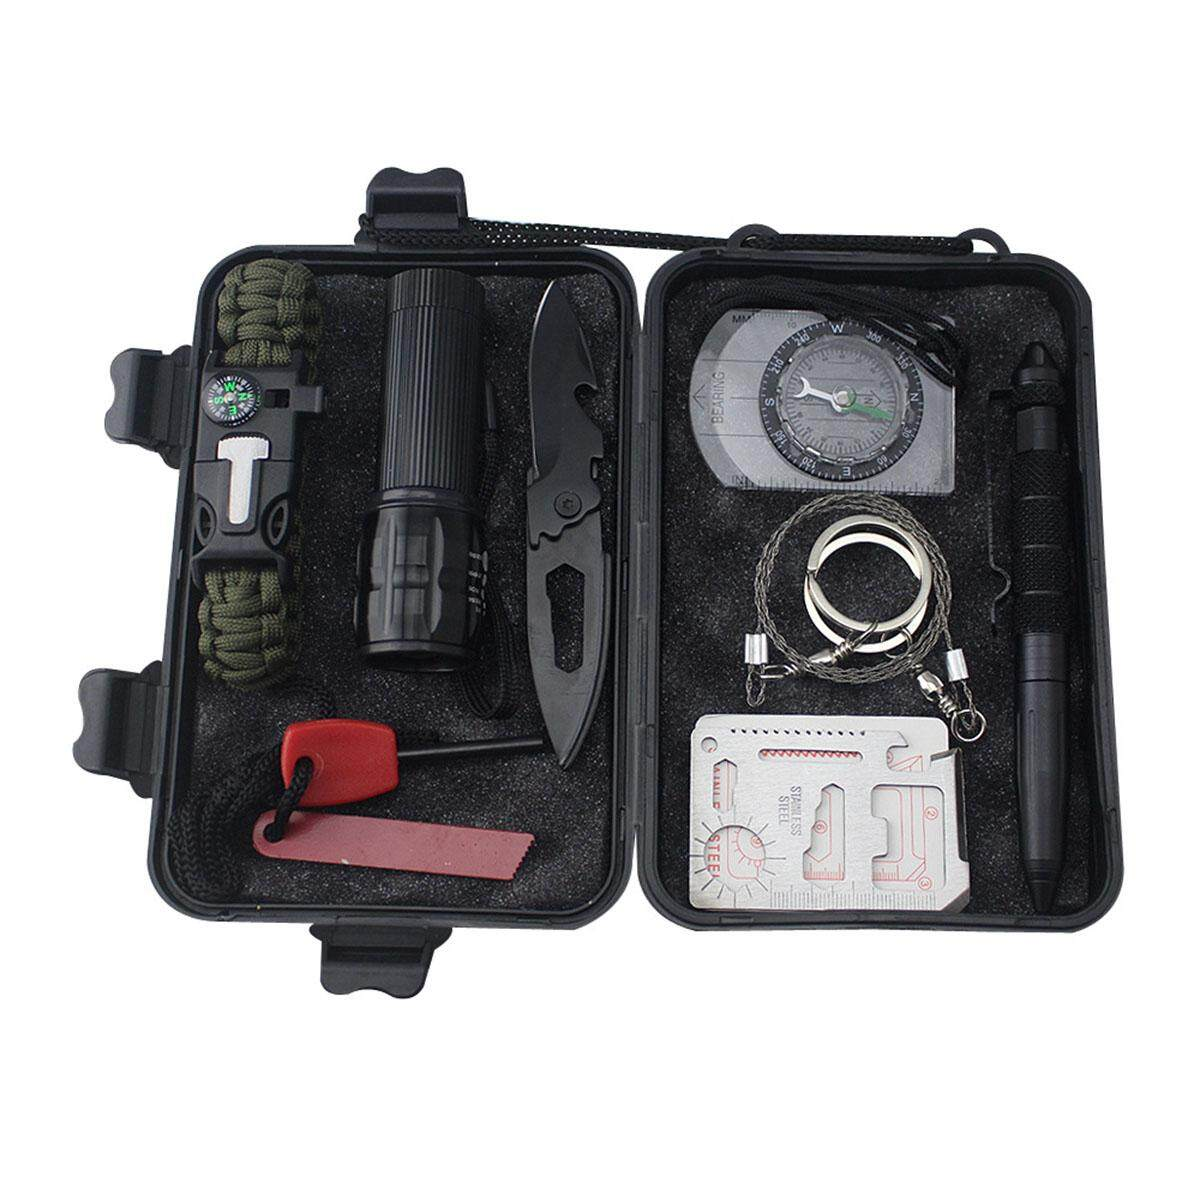 9 In 1 Professional Multifunction First-Aid Emergency Camping Survival Waterproof And Shockproof Equipment Kit Outdoor Hiking Gear Tool Kit By Ertic.